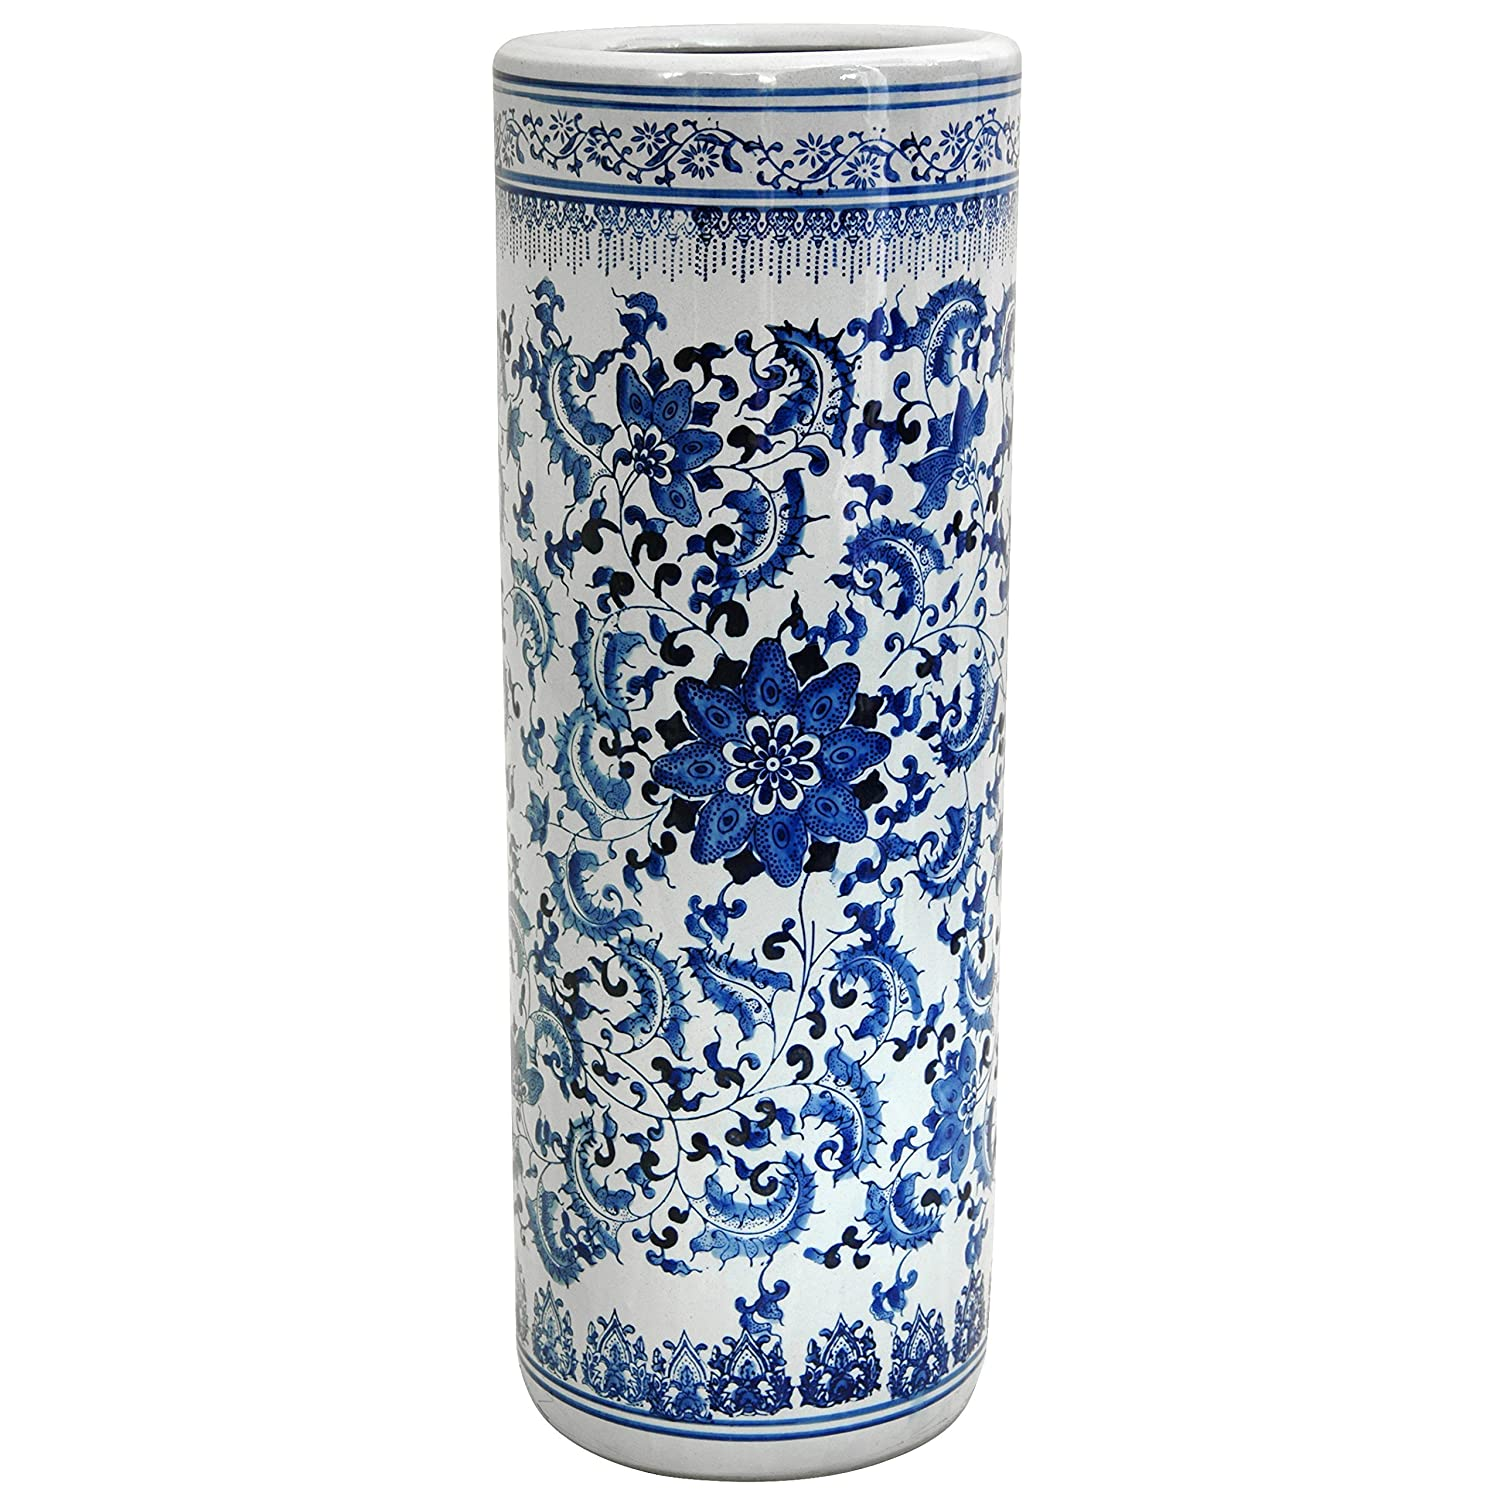 CDM product Oriental Furniture Distinctive Affordable Home Decor Gift Idea, 24-Inch Ming Blue and White Porcelain Oriental Umbrella and Cane Stand, Floral big image